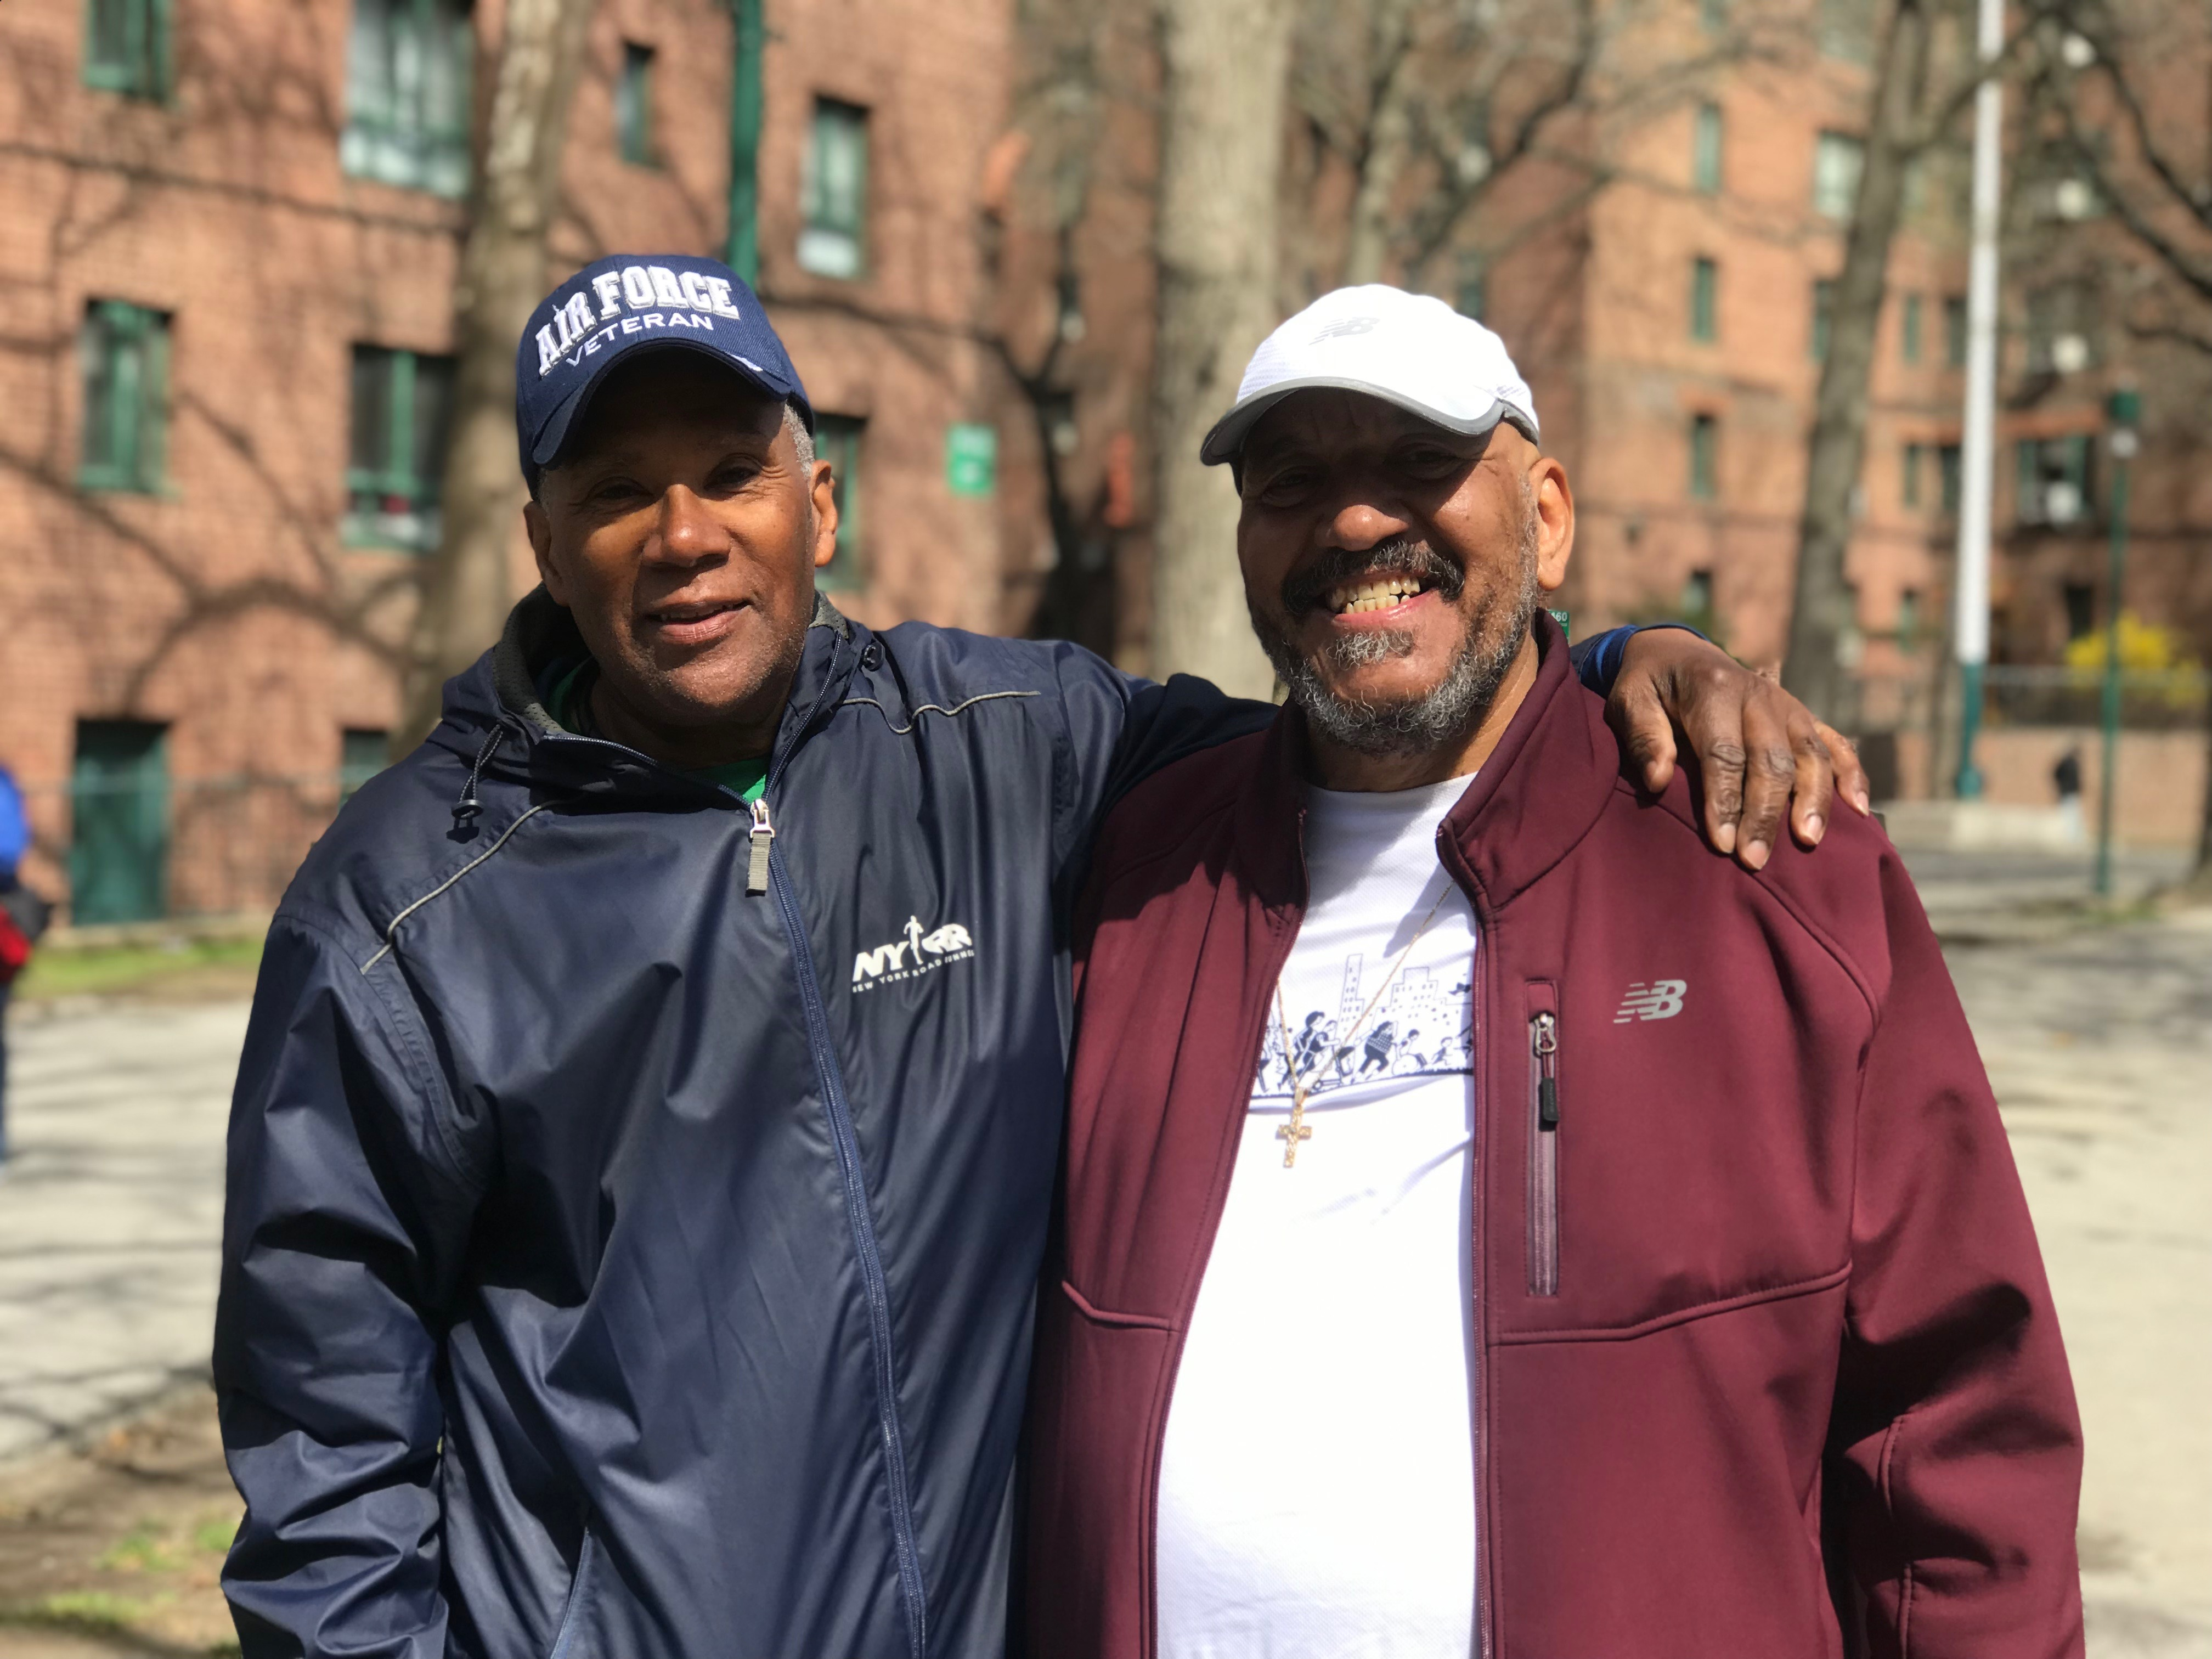 Juan Gonzalez with Mitchell Strong, Parkchester Striders coach.